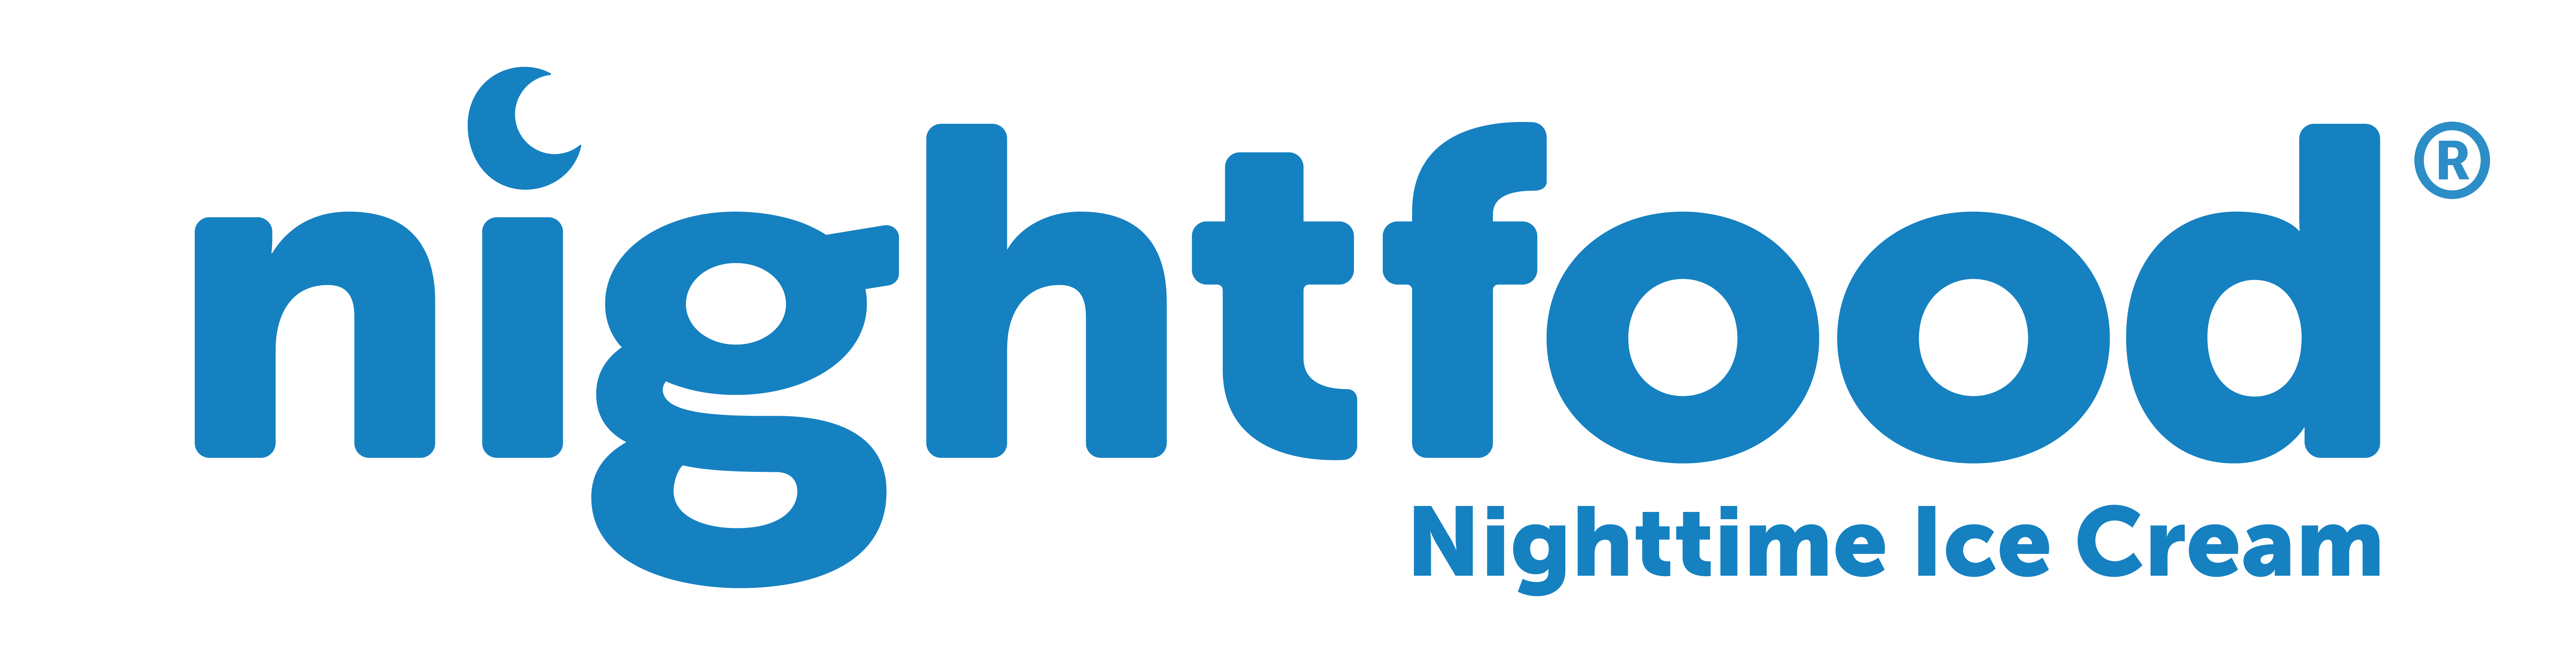 Nightfood Ice Cream Launches Into Pacific Northwest With Northwest Grocers, Including Red Apple and Thriftway Markets